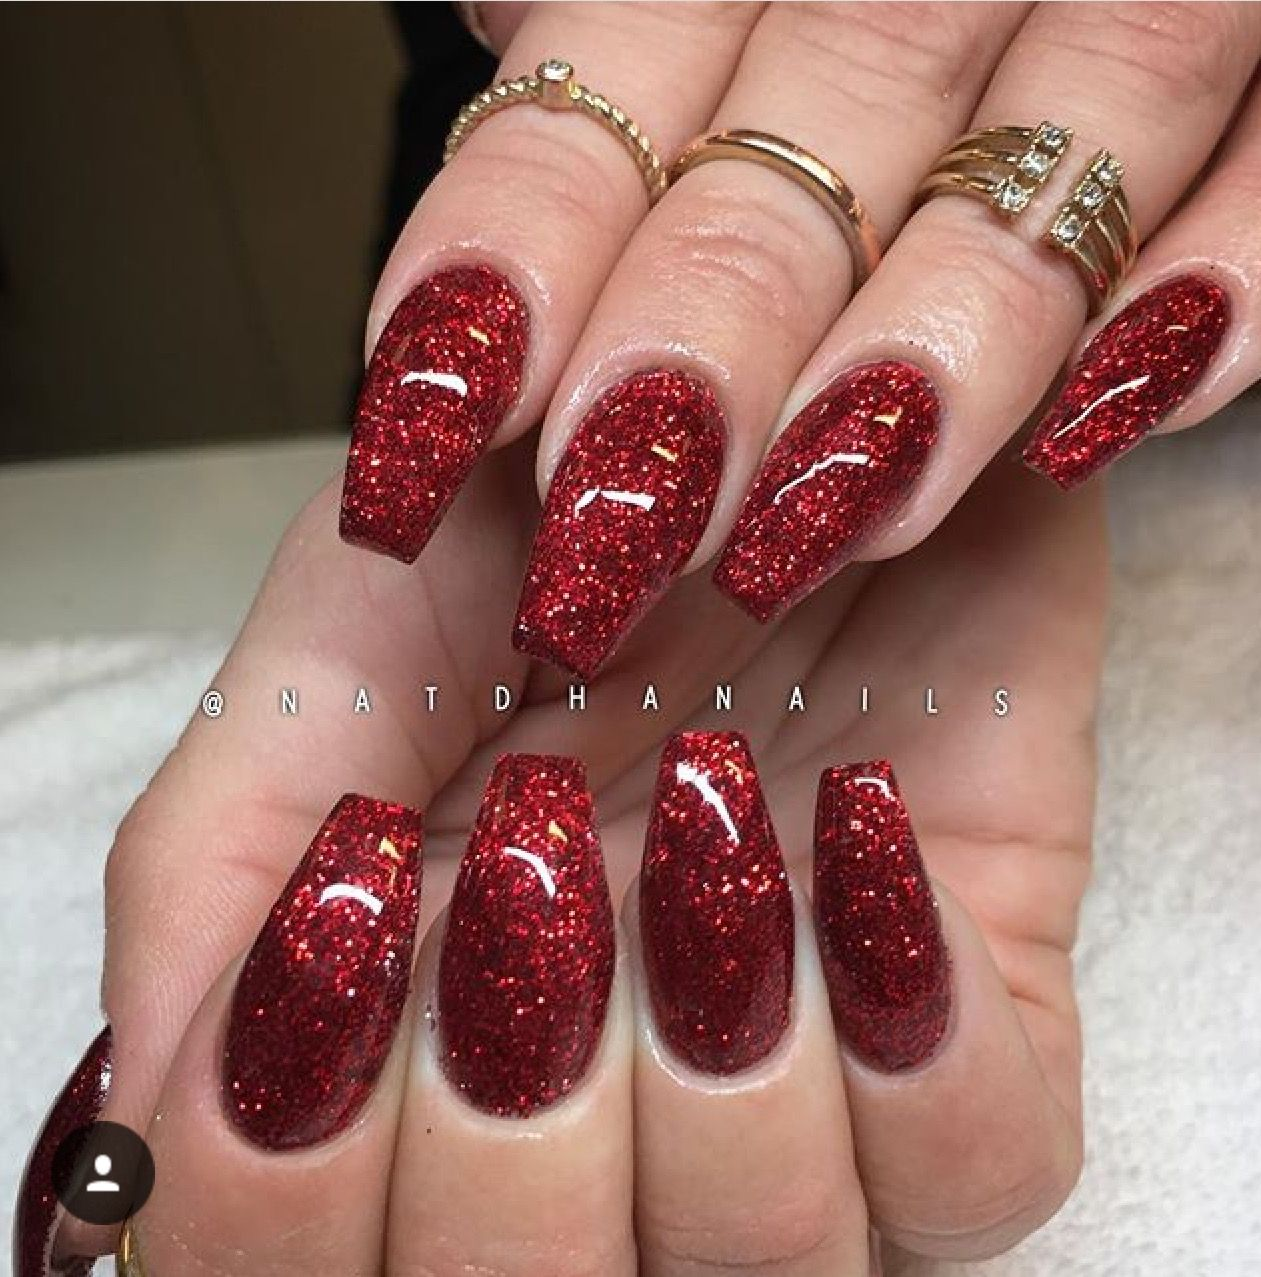 Pin By Tish On Nails Red Nails Glitter Glitter Nails Acrylic Prom Nails Red